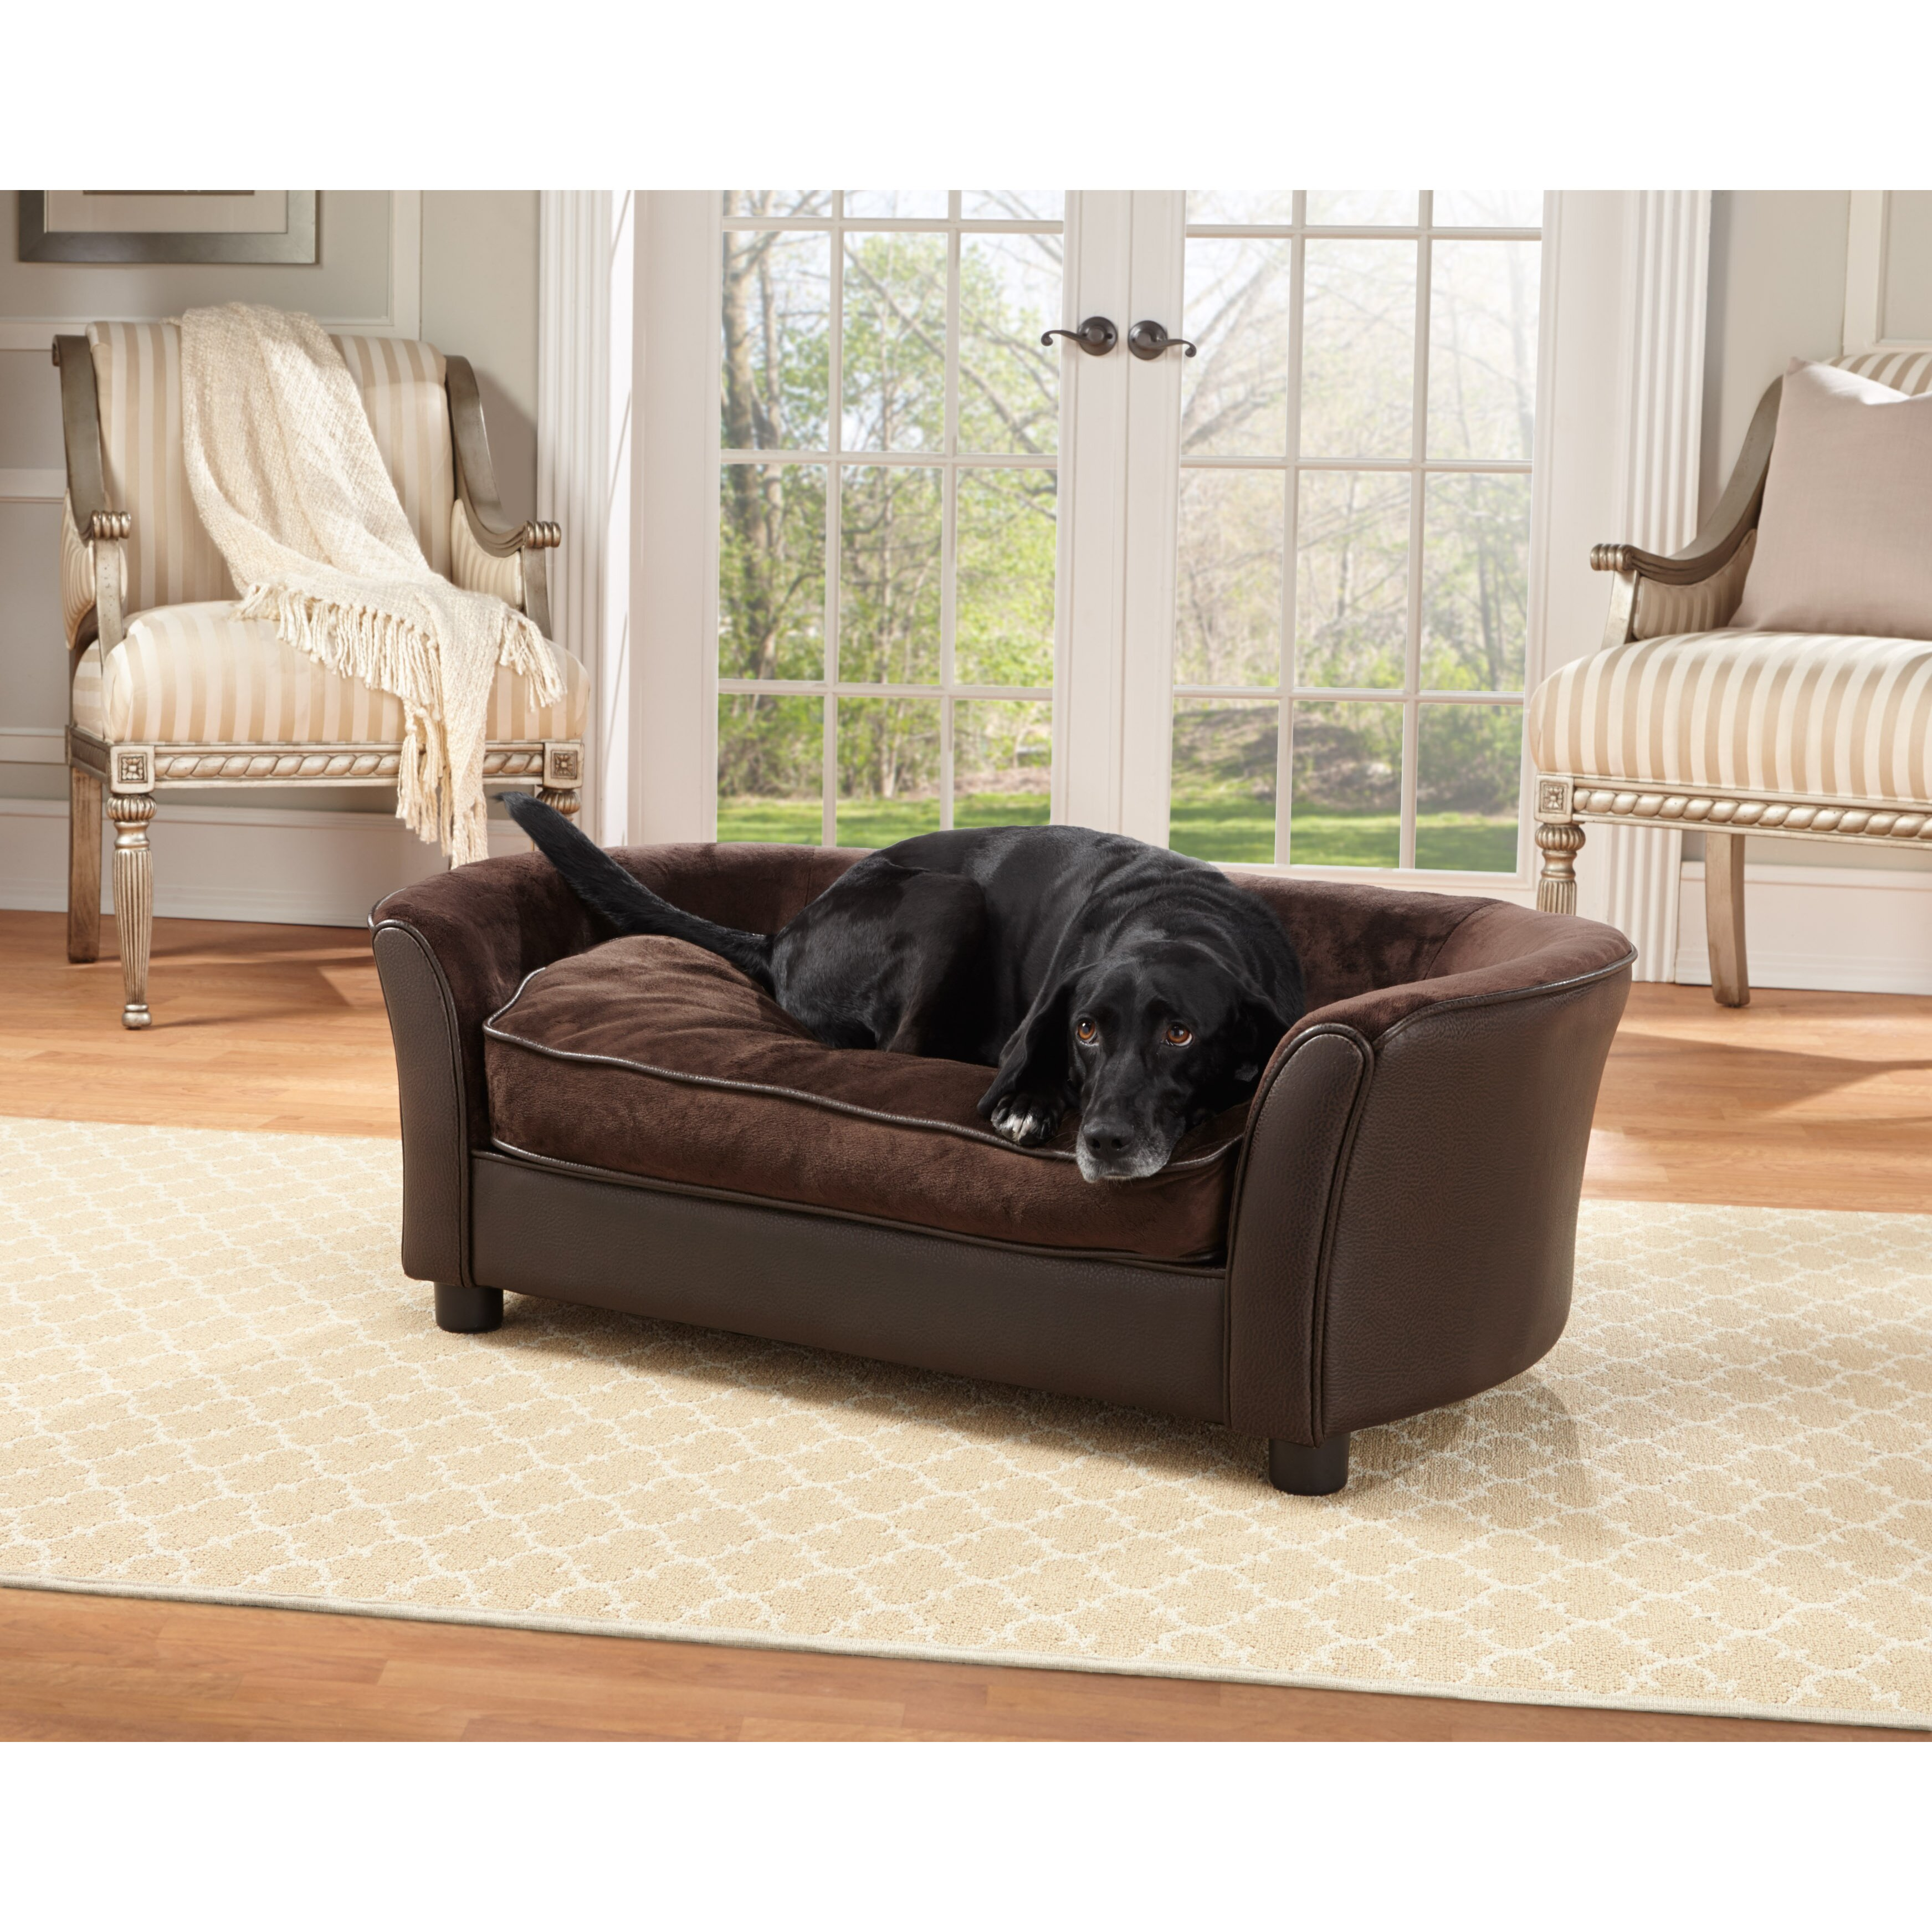 new Enchanted Home Pet Snuggle Pet Sofa Bed zapovednoe cafe